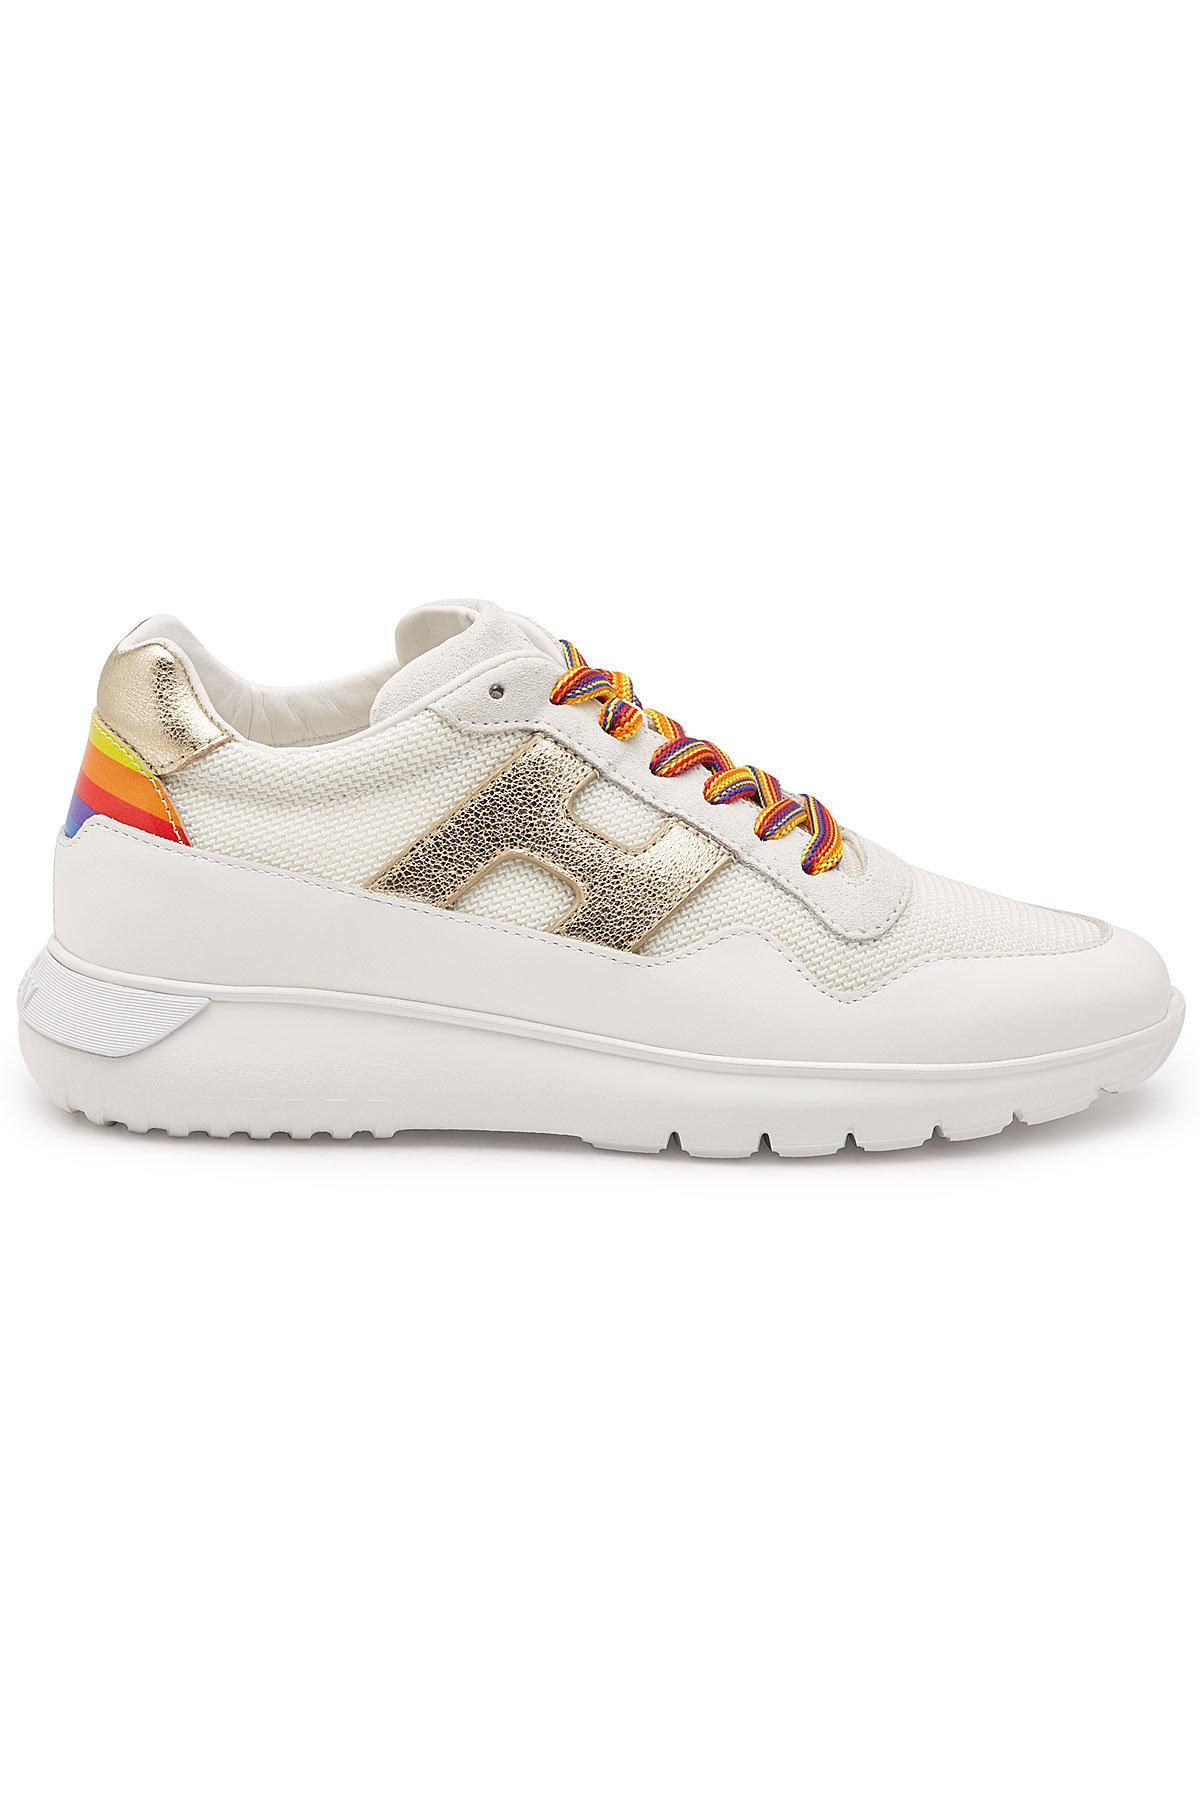 4a5a9ecb4735 Hogan - Multicolor H371 Leather Platform Sneakers With Mesh - Lyst. View  fullscreen